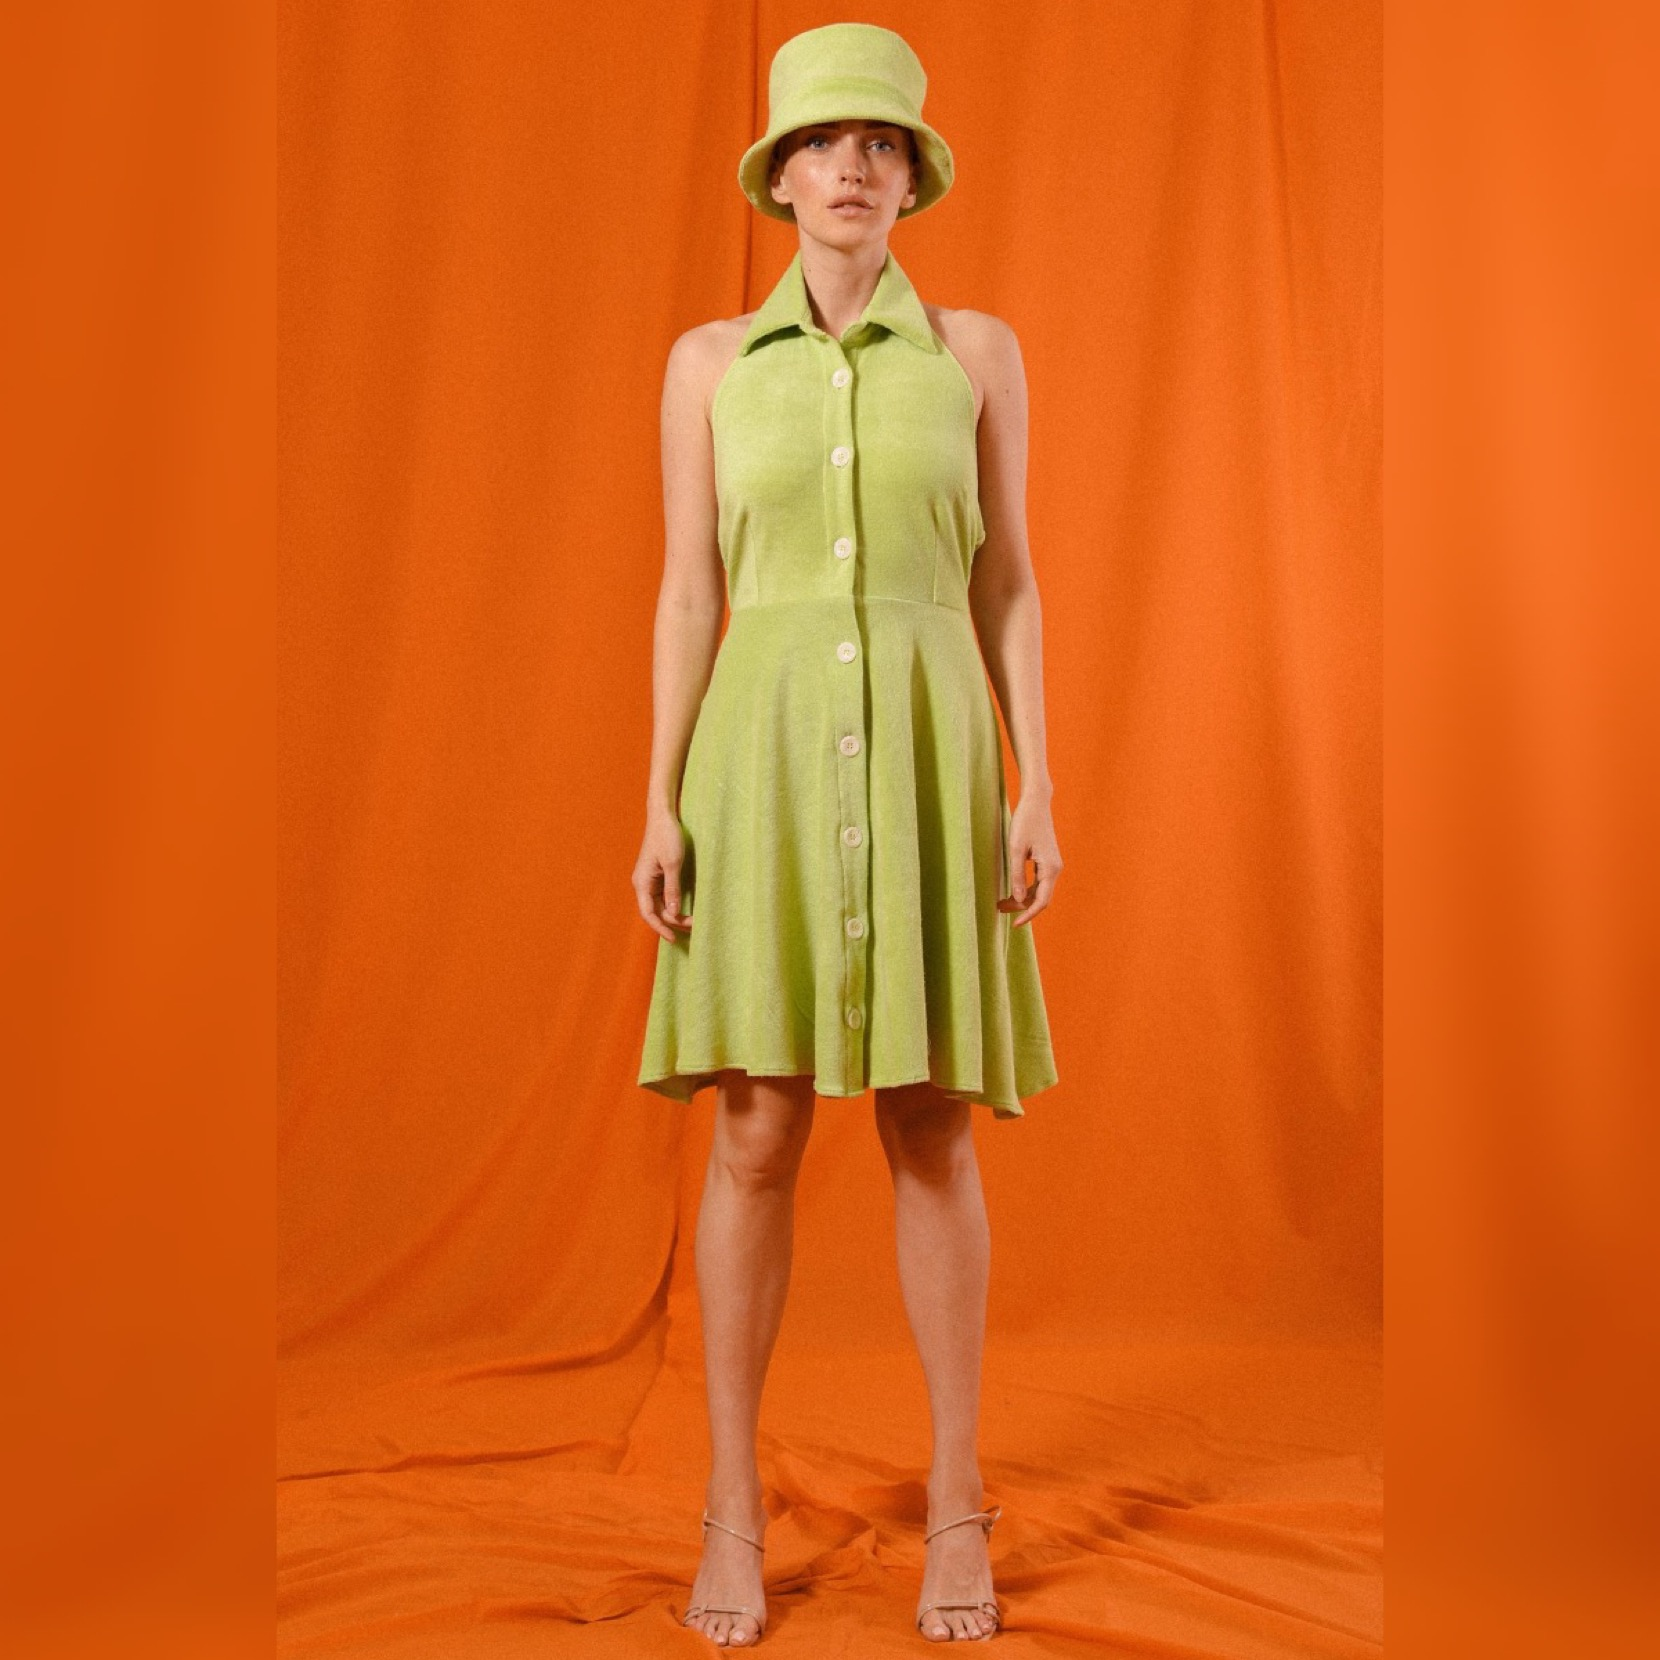 CARTAGENA COLLAR DRESS SHORT & BUCKET HAT in NEON TERRY CLOTH by Saint Movaji for use by 360 Magazine